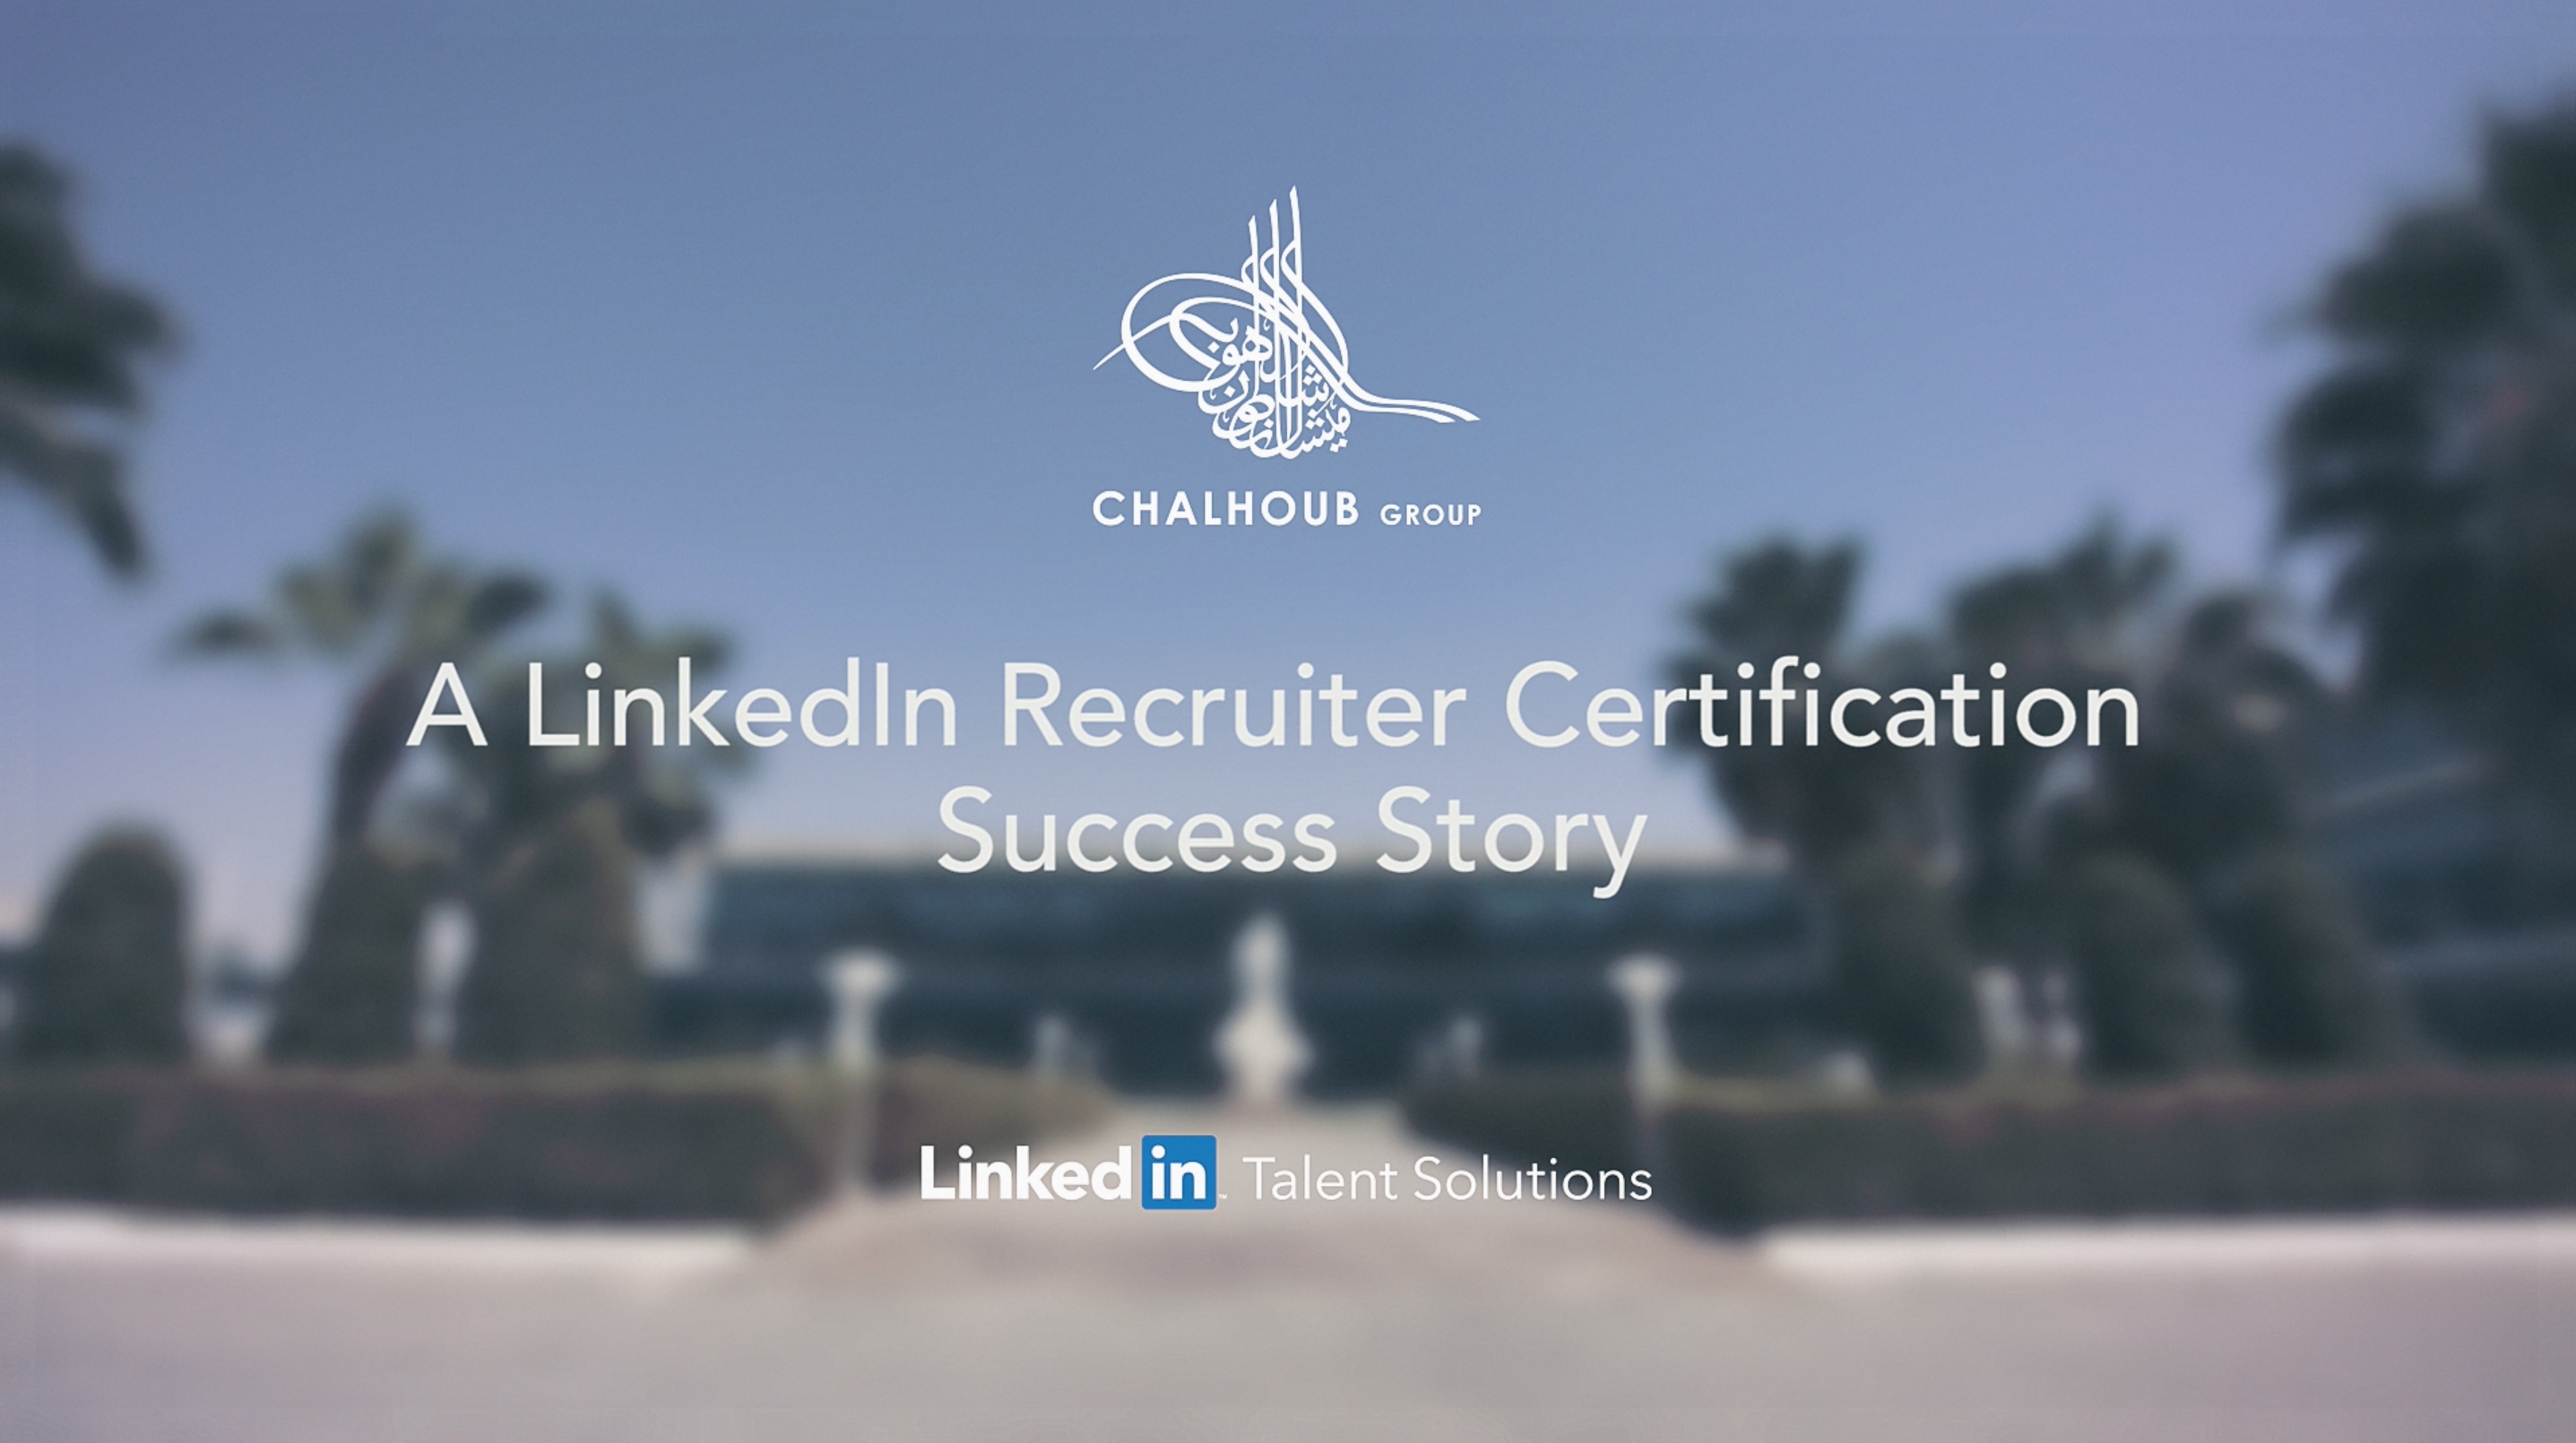 LinkedIn Success Stories - Chalhoub